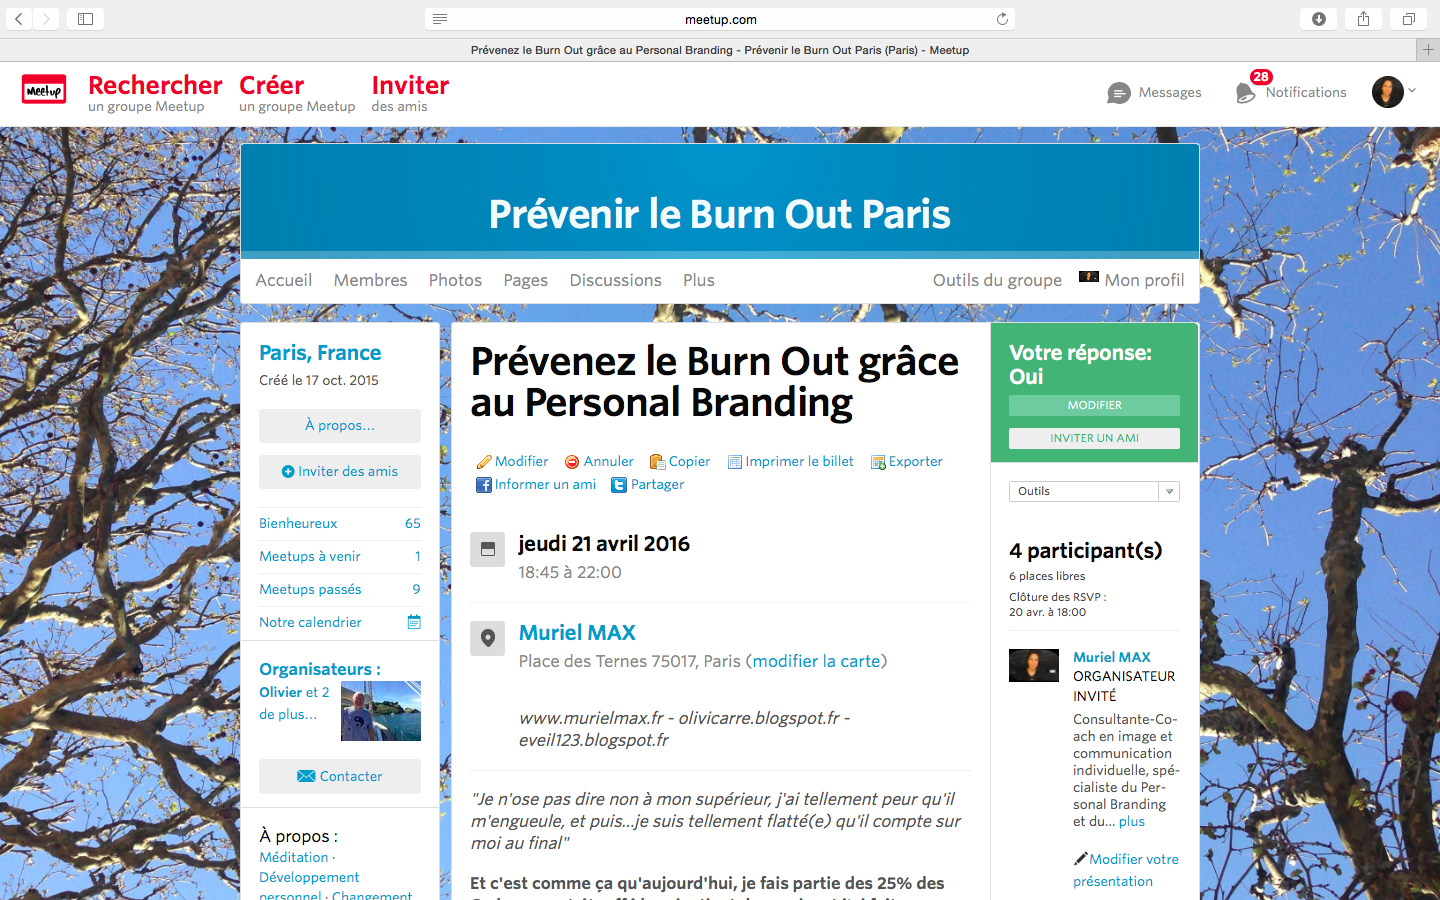 Prendre soin de son image et de son discours pour empêcher le Burn Out -  inscription sur :  http://www.meetup.com/fr-FR/Prevenir-le-Burn-Out-Paris/events/230316090/